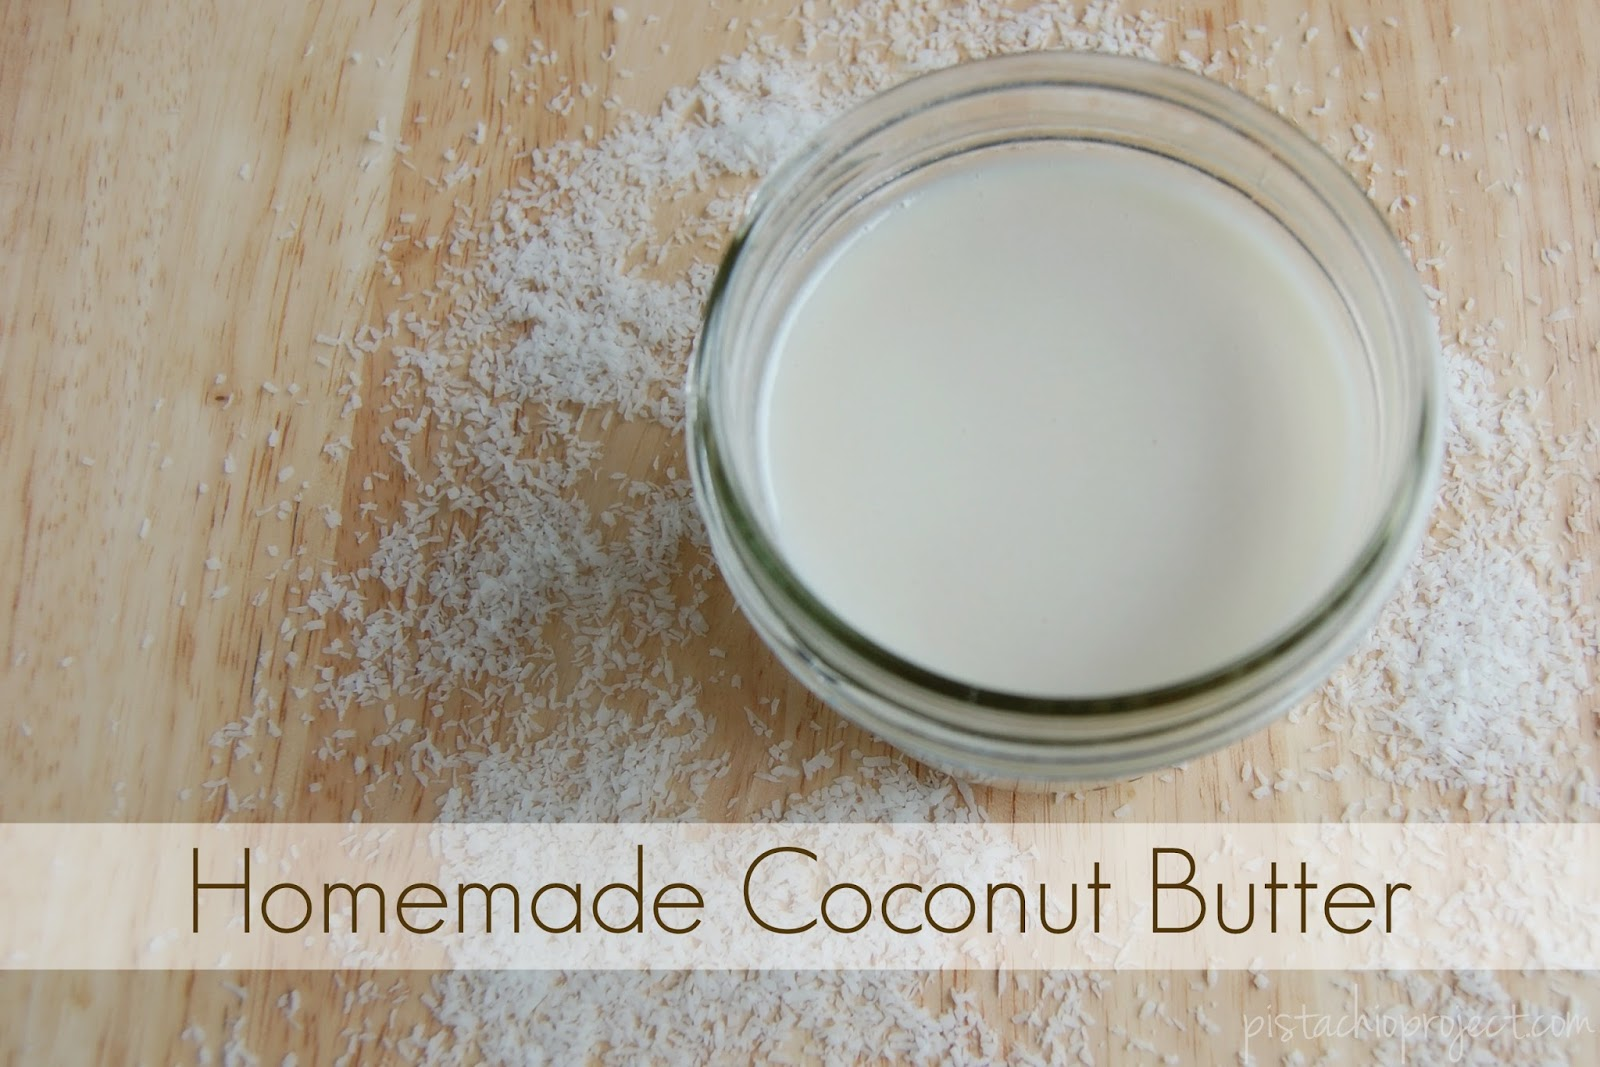 Homemade Coconut Butter |The Pistachio Project